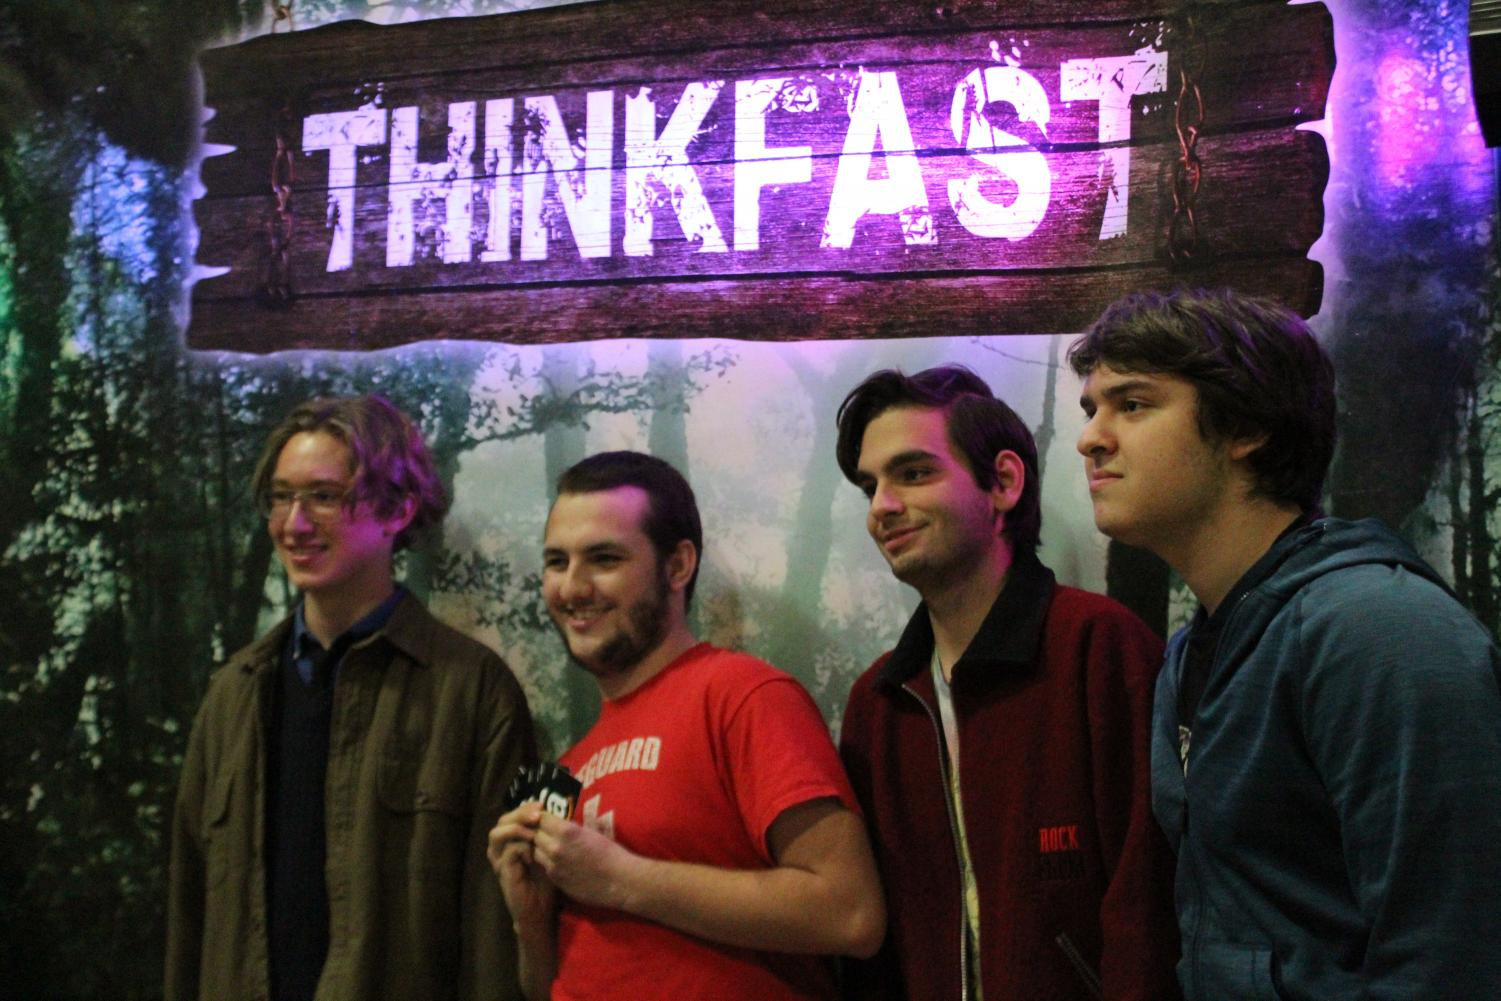 Tyler Jungbauer (12), John Ives (12), Bora Giyik (12) and Max Piccioni (12) were the winning team of the Think Fast Interactive competition. As a reward, they won a total of $100 worth of Amazon gift cards.